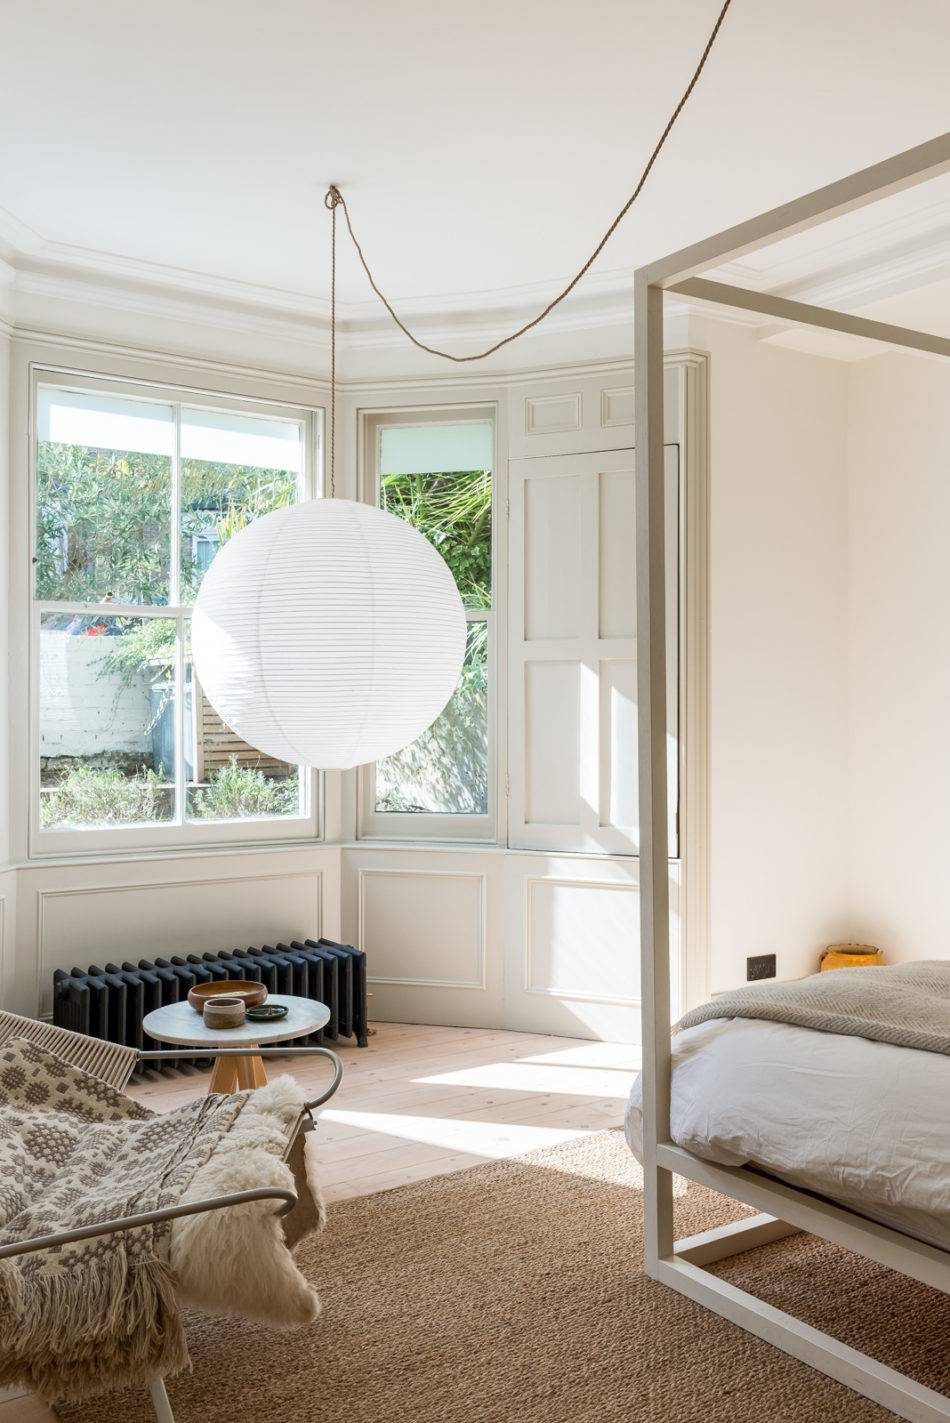 An oversized paper lantern hangs near the window to delineate the sleeping space from the seating area. Photograph from English Translation: A Compact Victorian Gets an Eclectic but Cohesive Makeover.